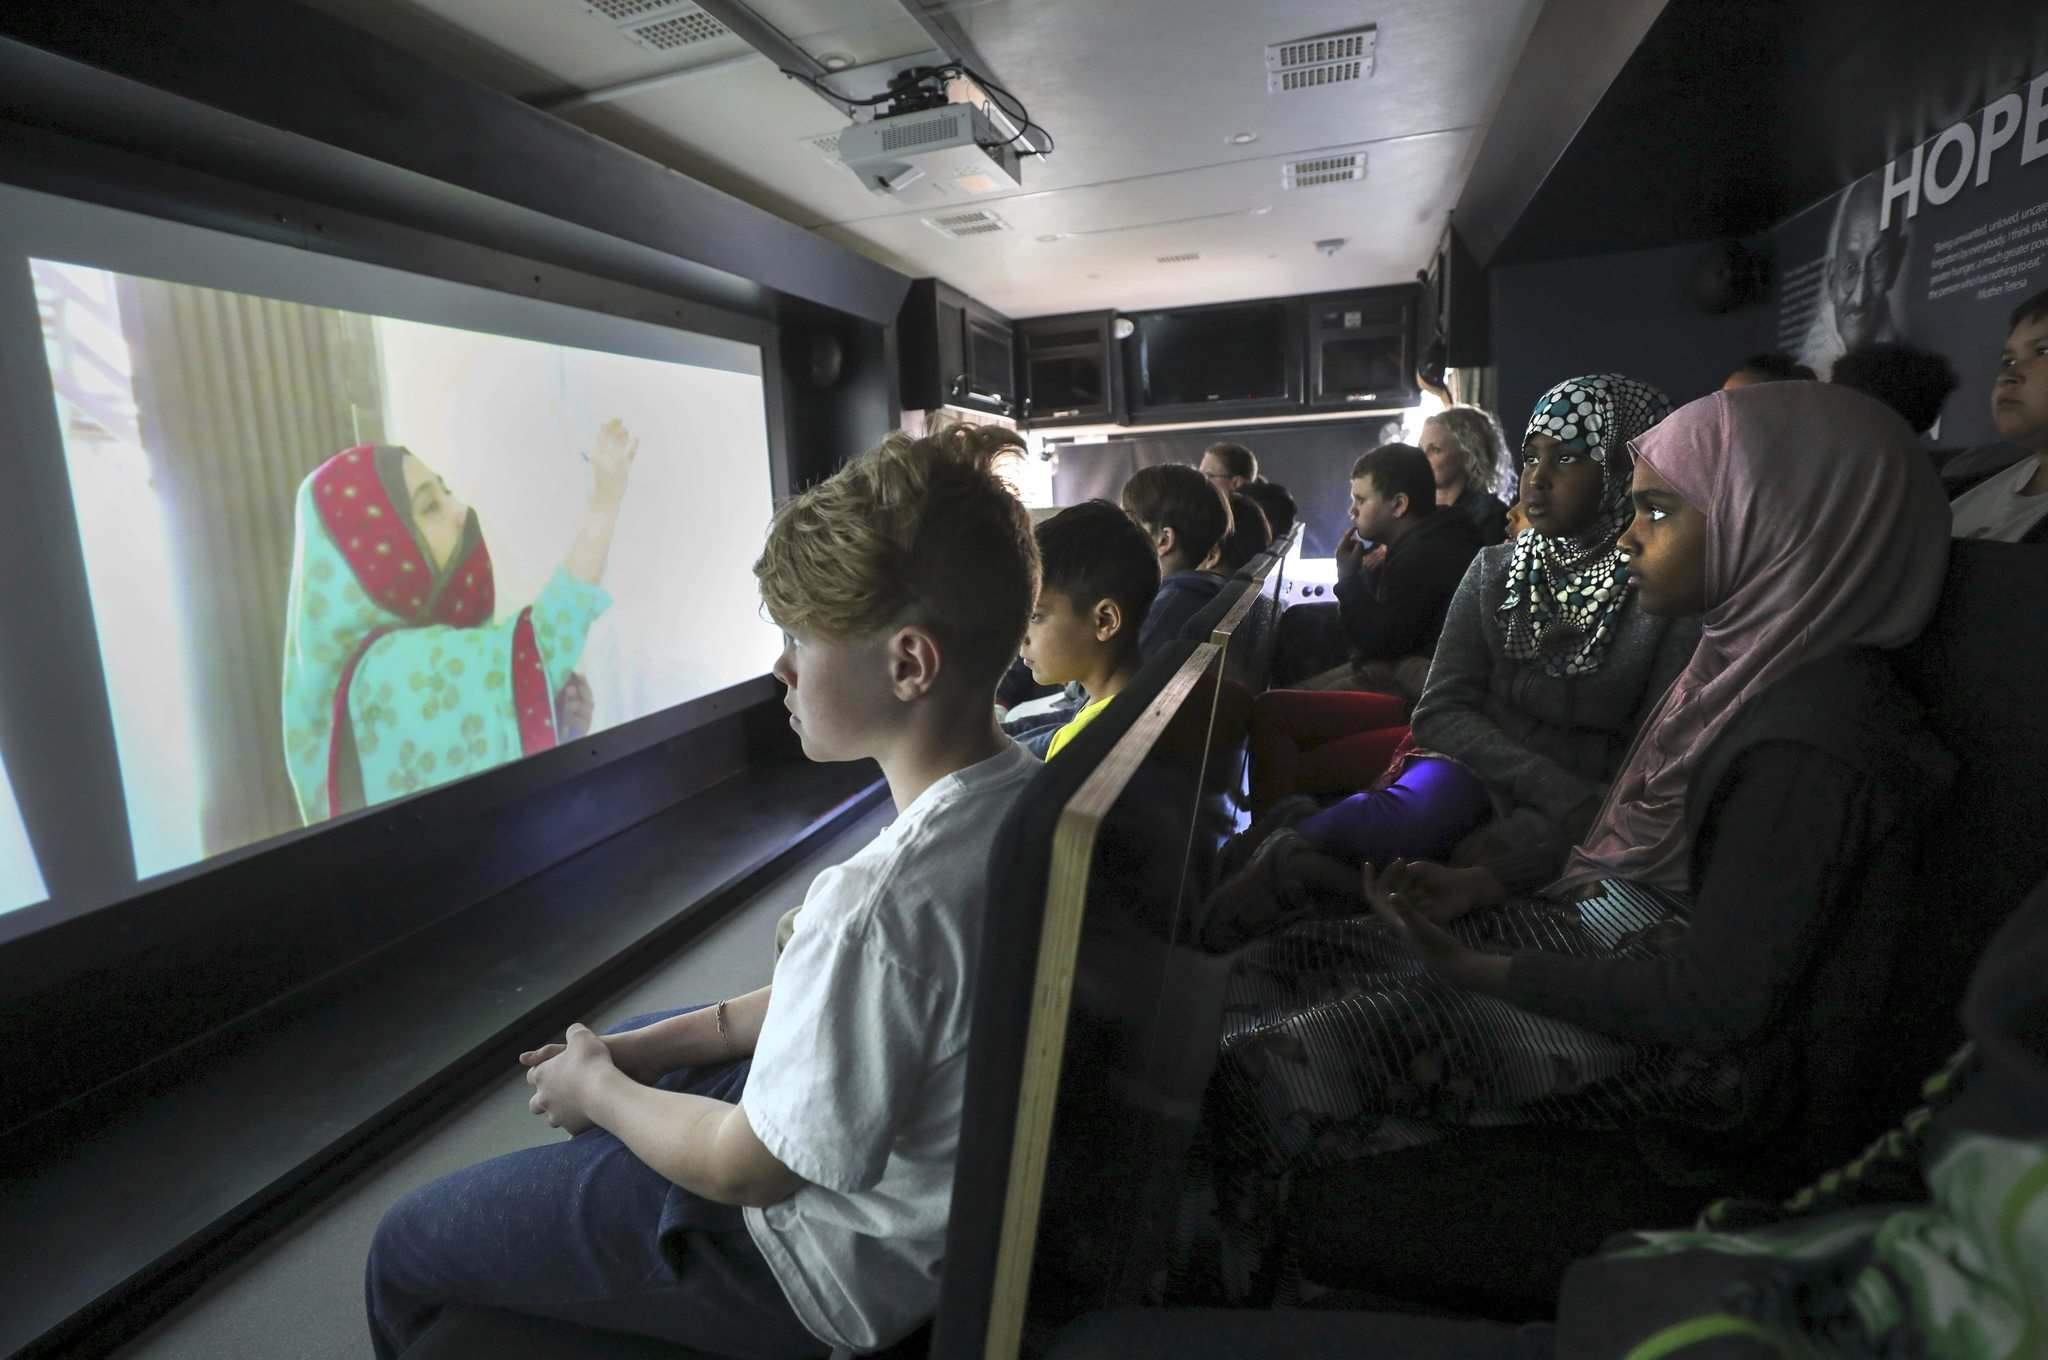 RUTH BONNEVILLE / WINNIPEG FREE PRESS </p><p>Students from Mulvey School watch a video on Hope while seated on the Simon Wiesenthal Center's Humanity Bus while it's stopped at their school for classroom teaching sessions on Thursday. </p>